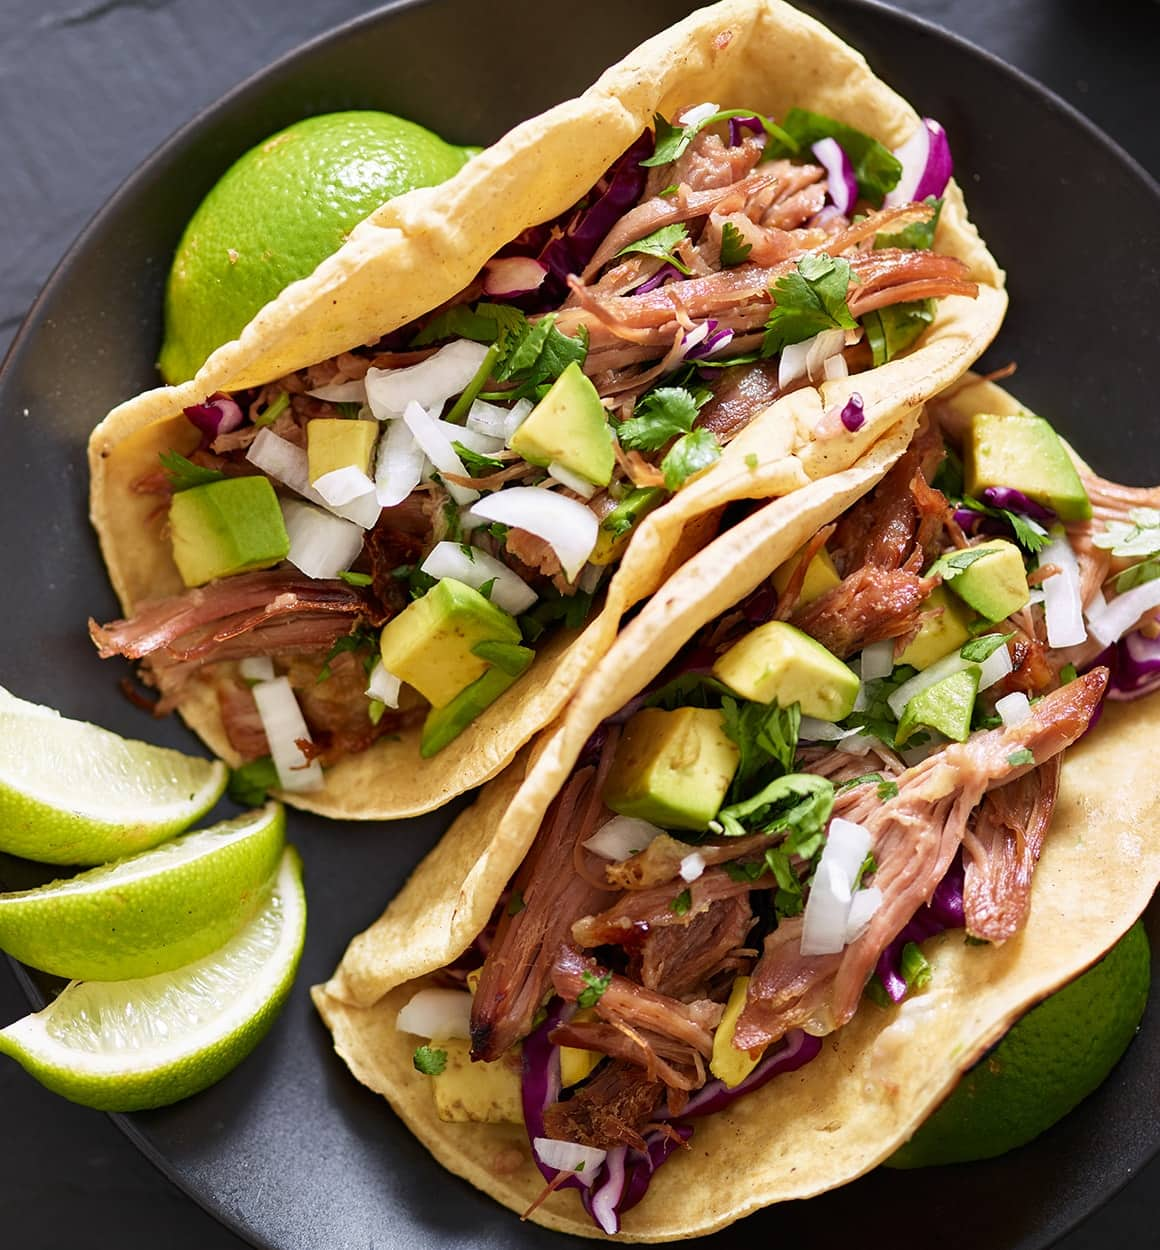 Carnitas Tacos Recipe Ninja Ninja Foodi 6 5 Qt The Pressure Cooker That Crisps Air Fryer Op305co